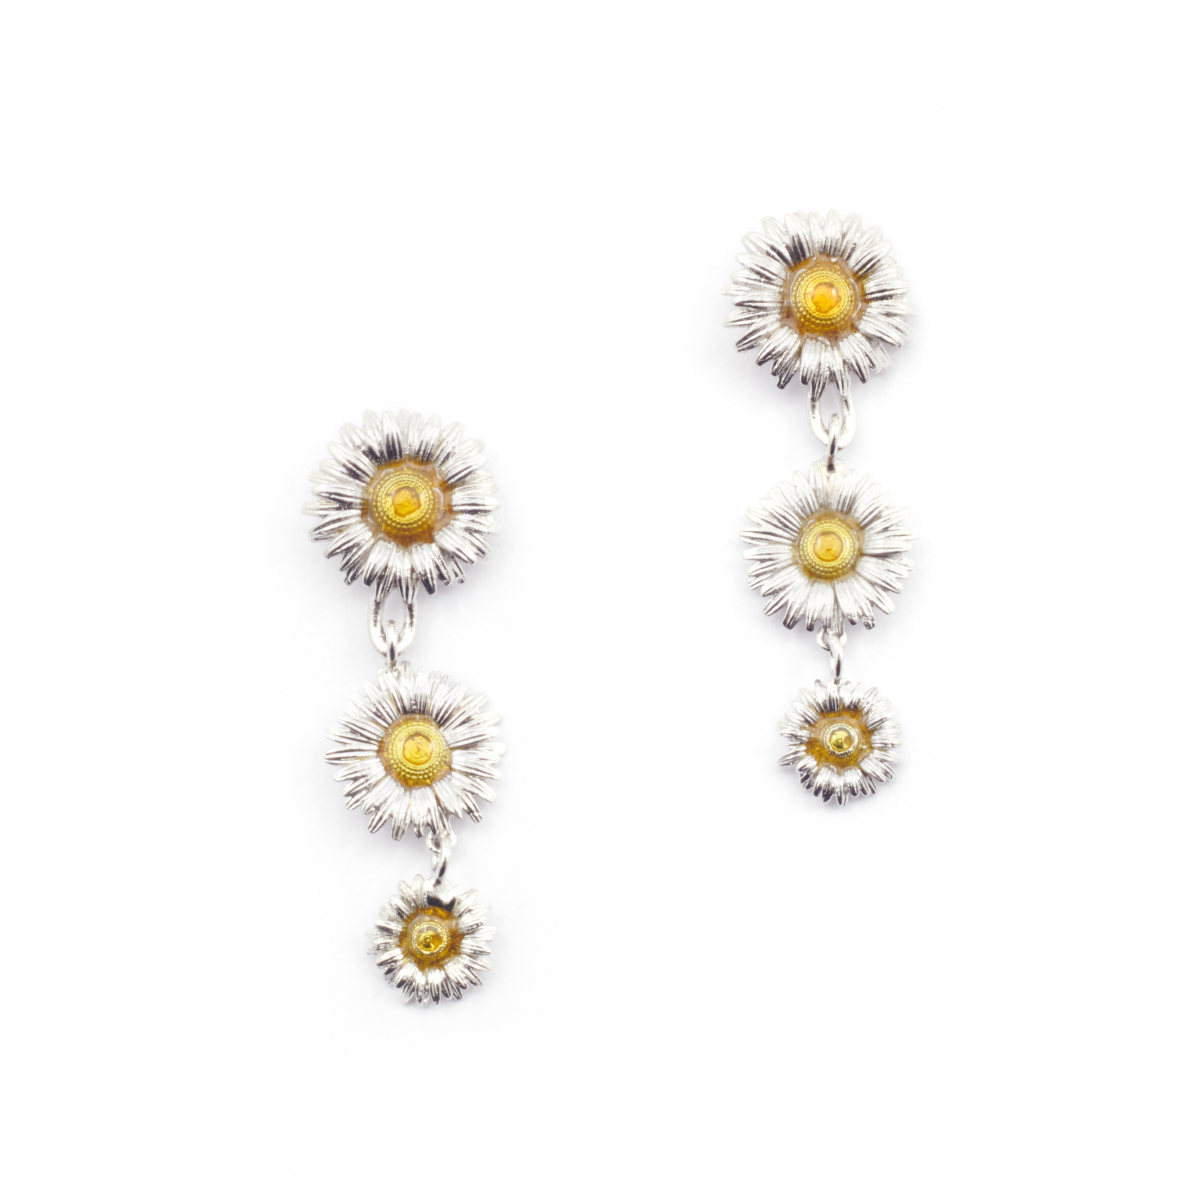 Daisy Chain Earrings - Rhodium